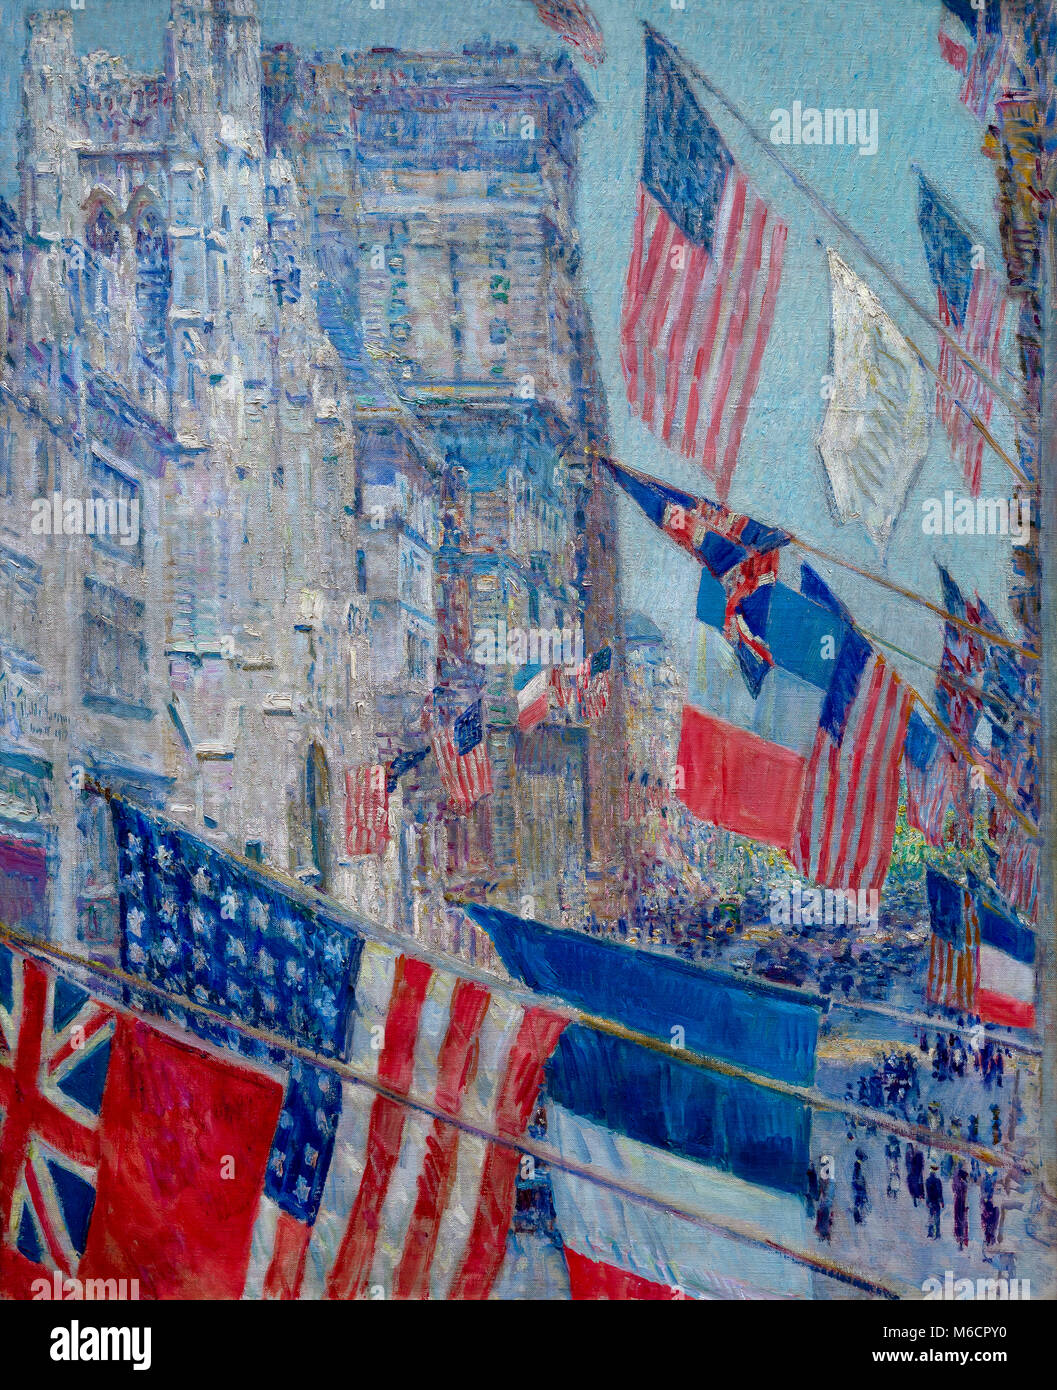 Allies Day, May 1917, Childe Hassam, 1917, National Gallery of Art, Washington DC, USA, North America - Stock Image